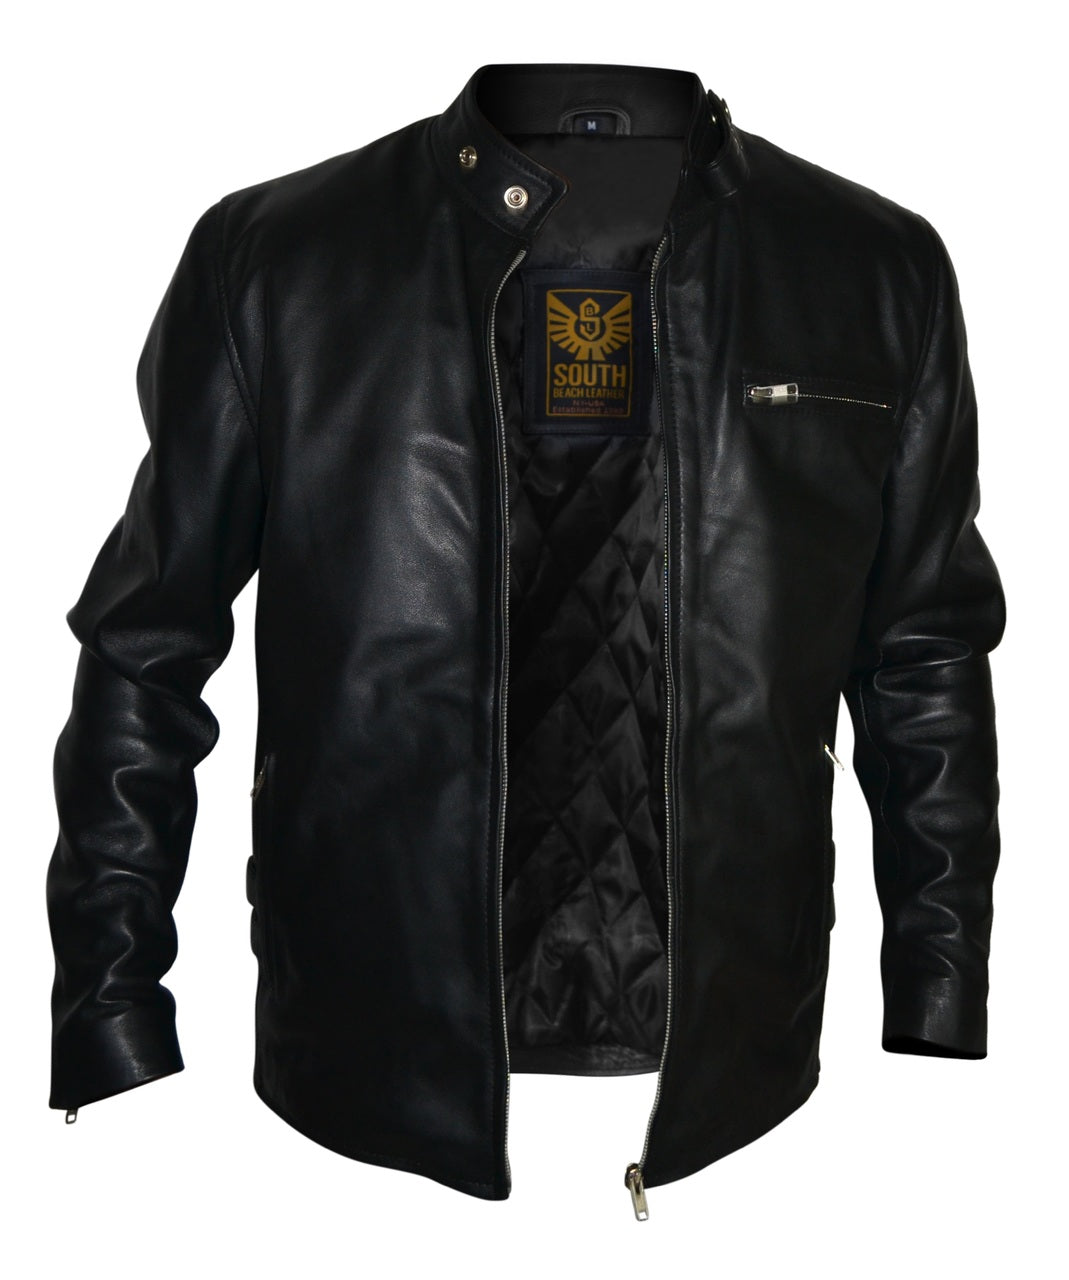 Mens Designer Motorcycle Racer Leather Jacket